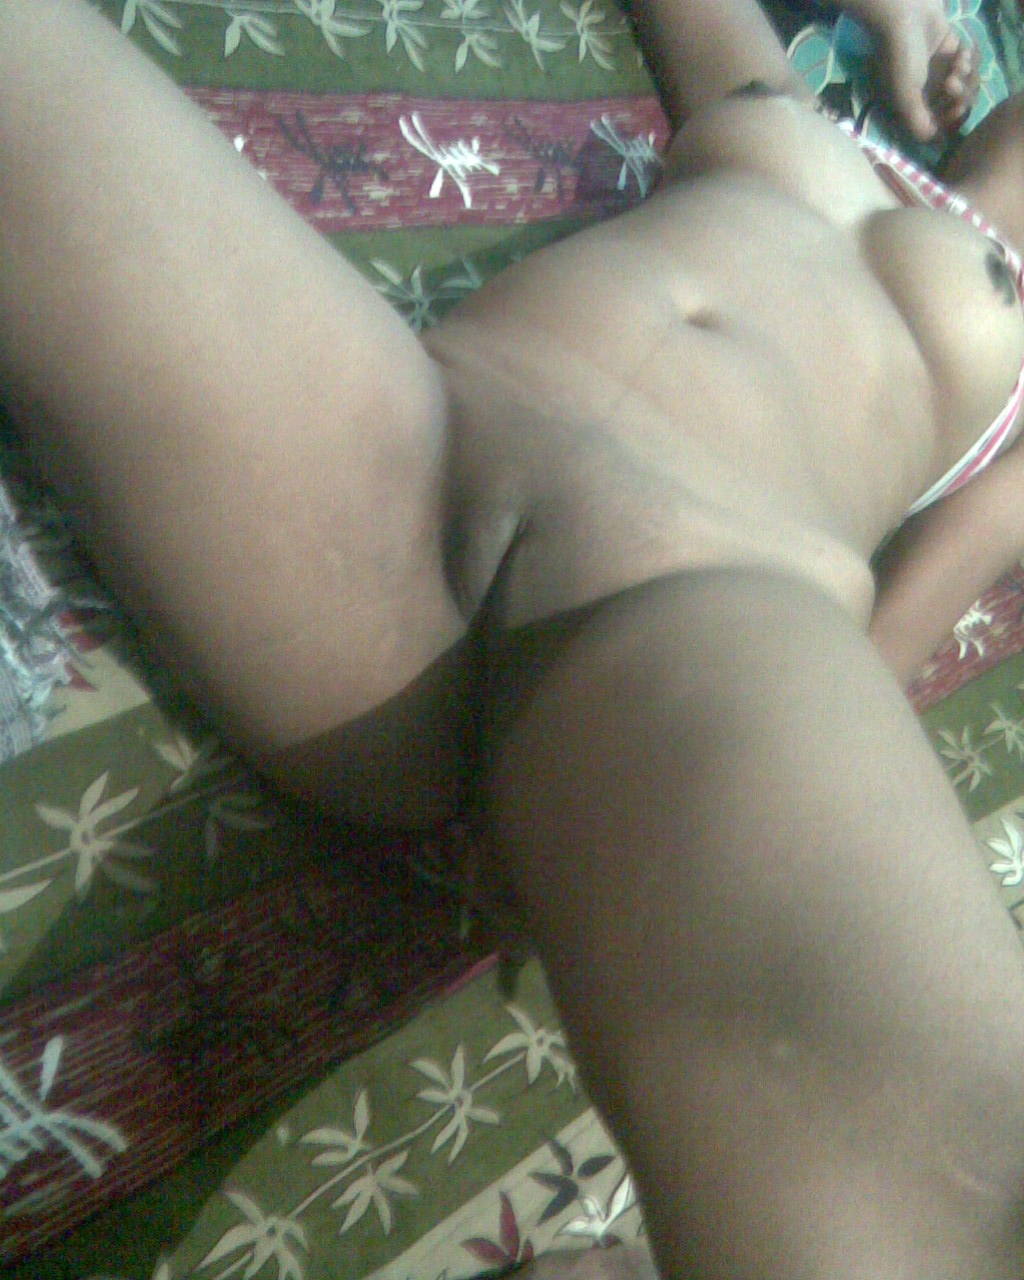 Swetha Submitted More Naked And Indian Sex Pics - Real -7241